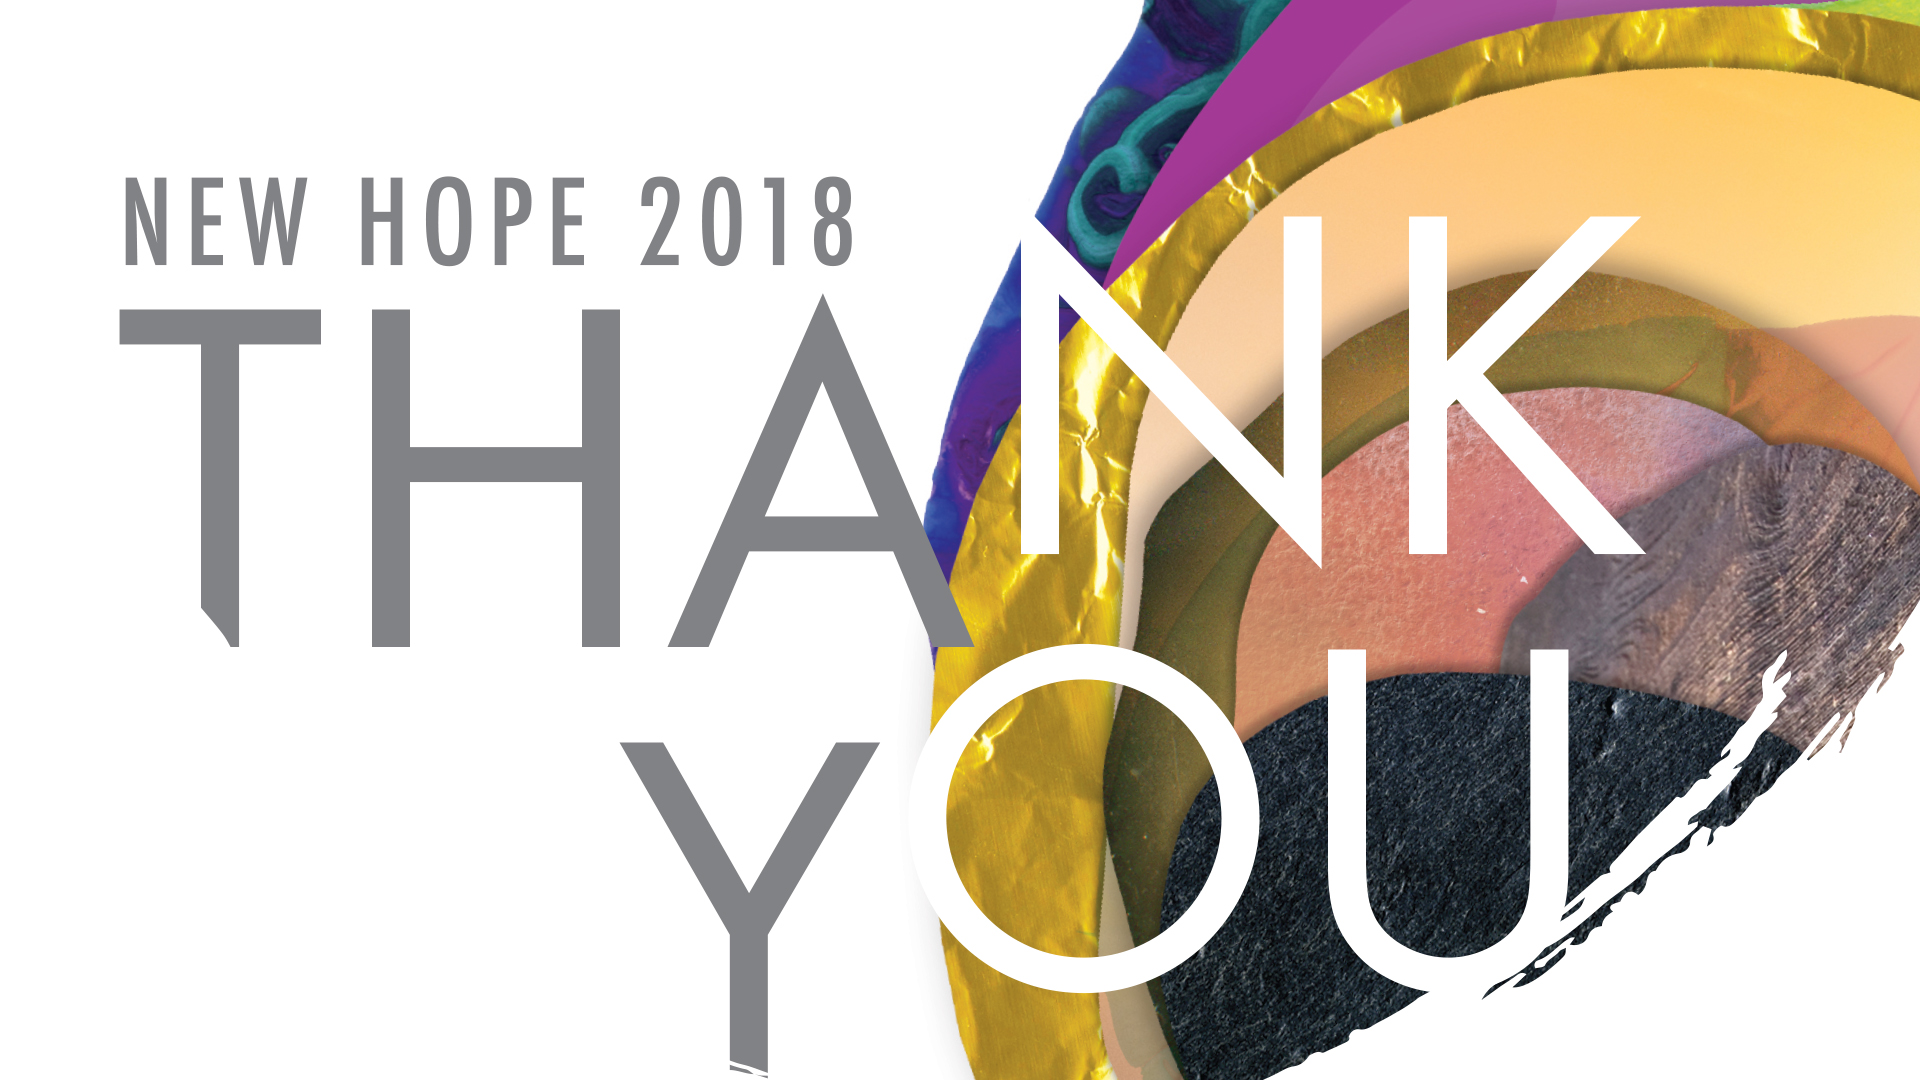 New Hope Annual Report 2018